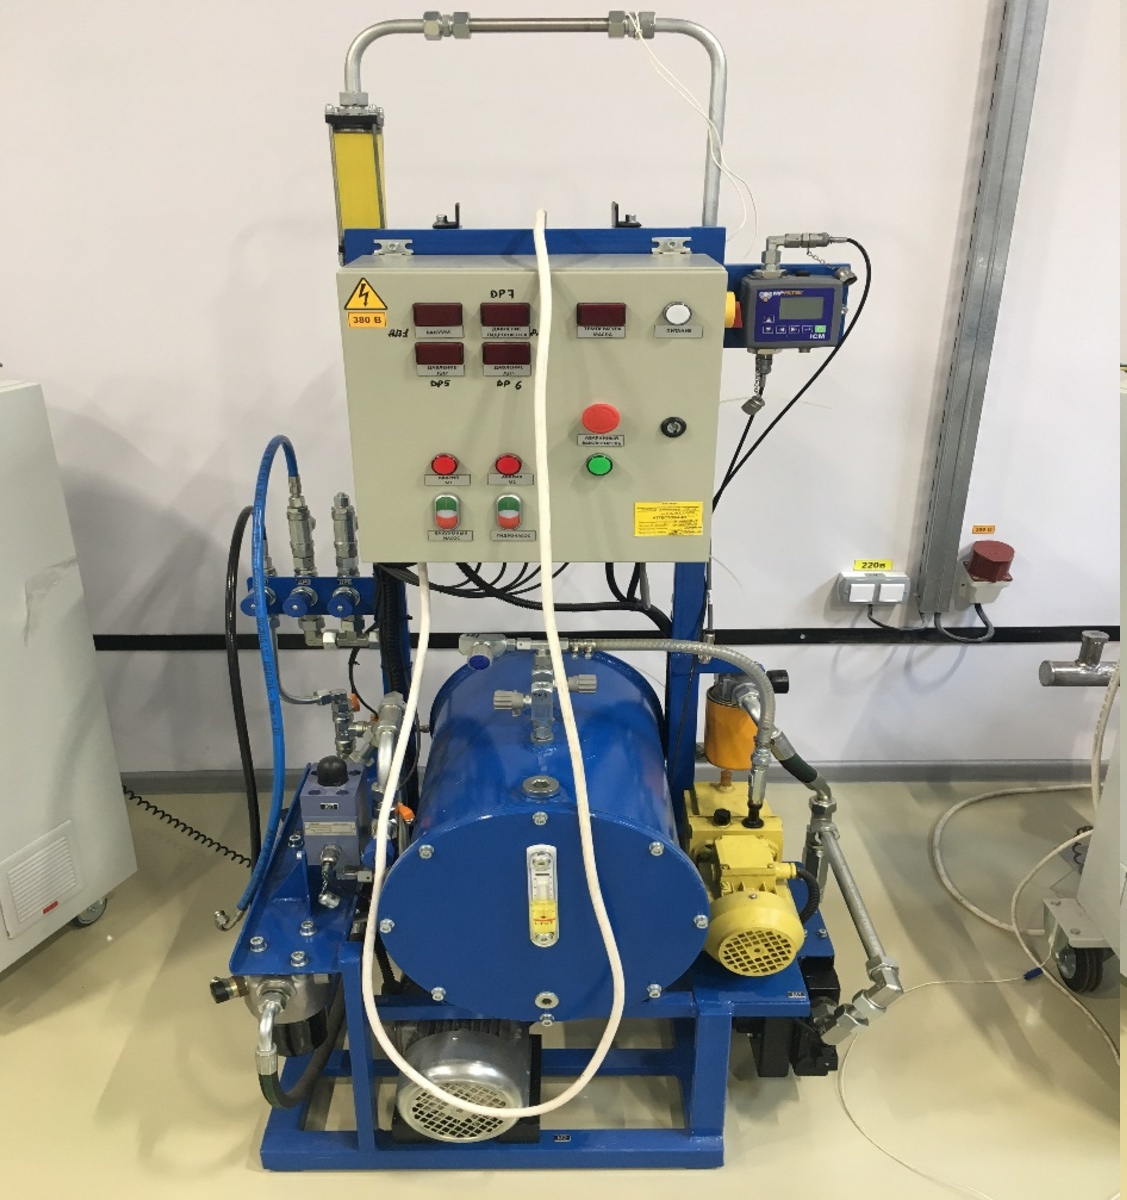 Test-bench for vacuum filling of special products